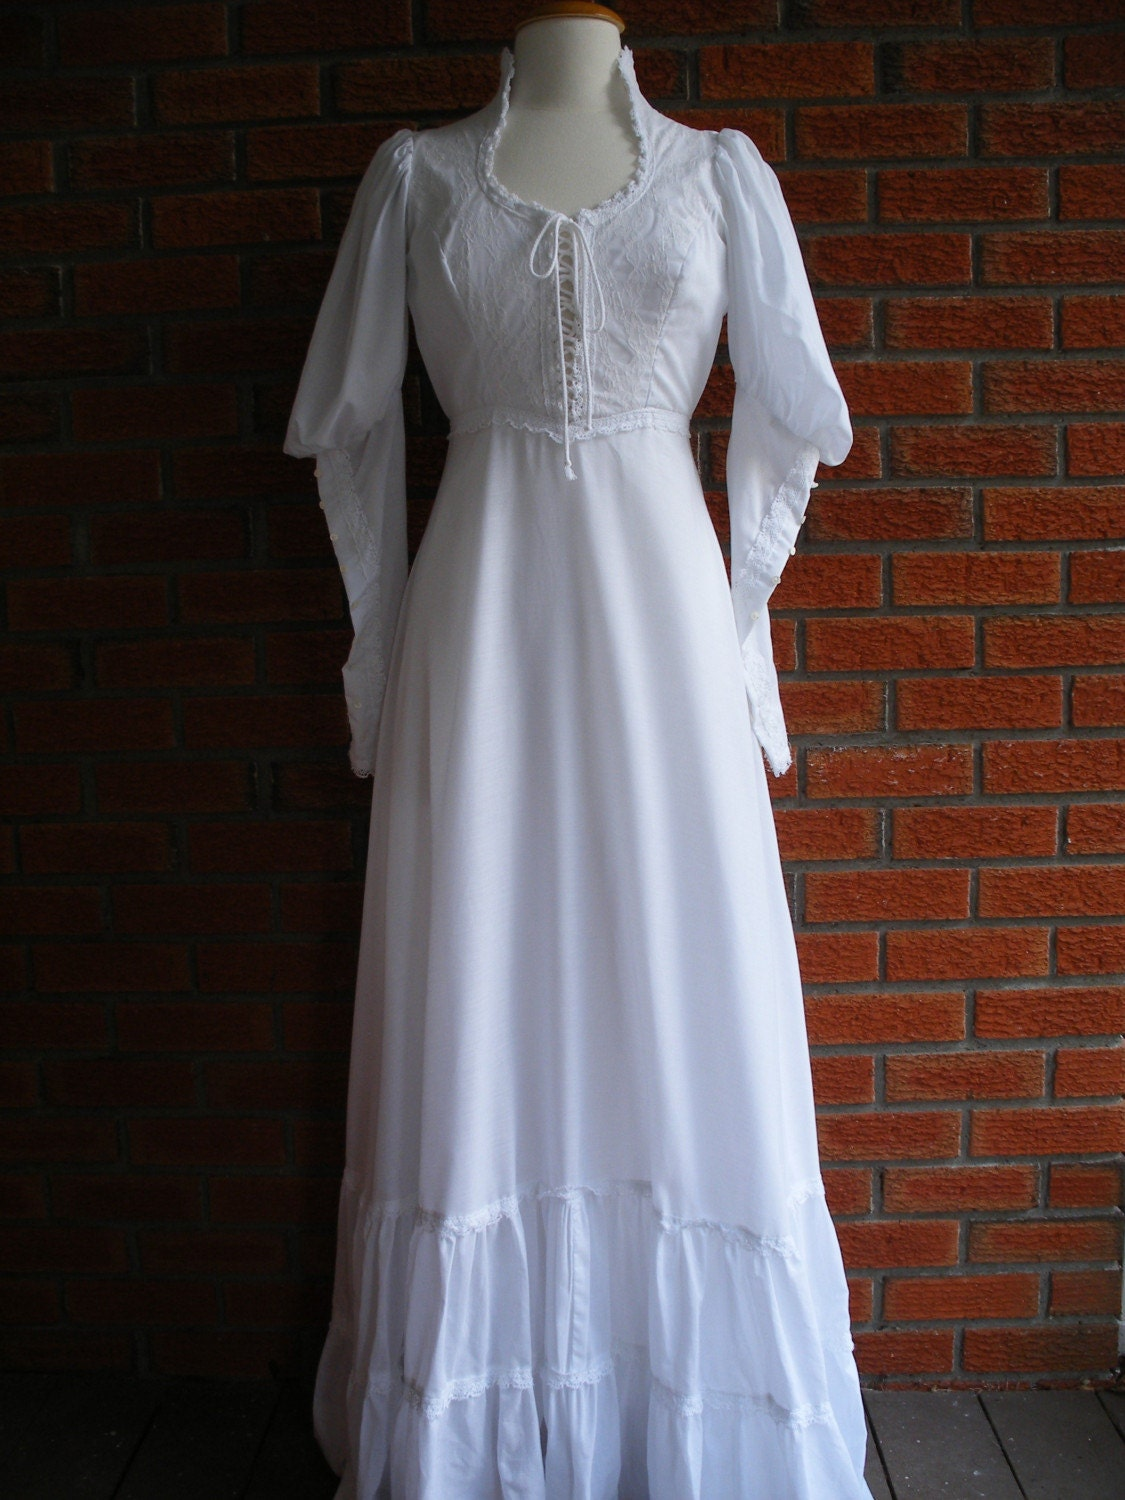 Gunny Sack Wedding Dress - Gown And Dress Gallery